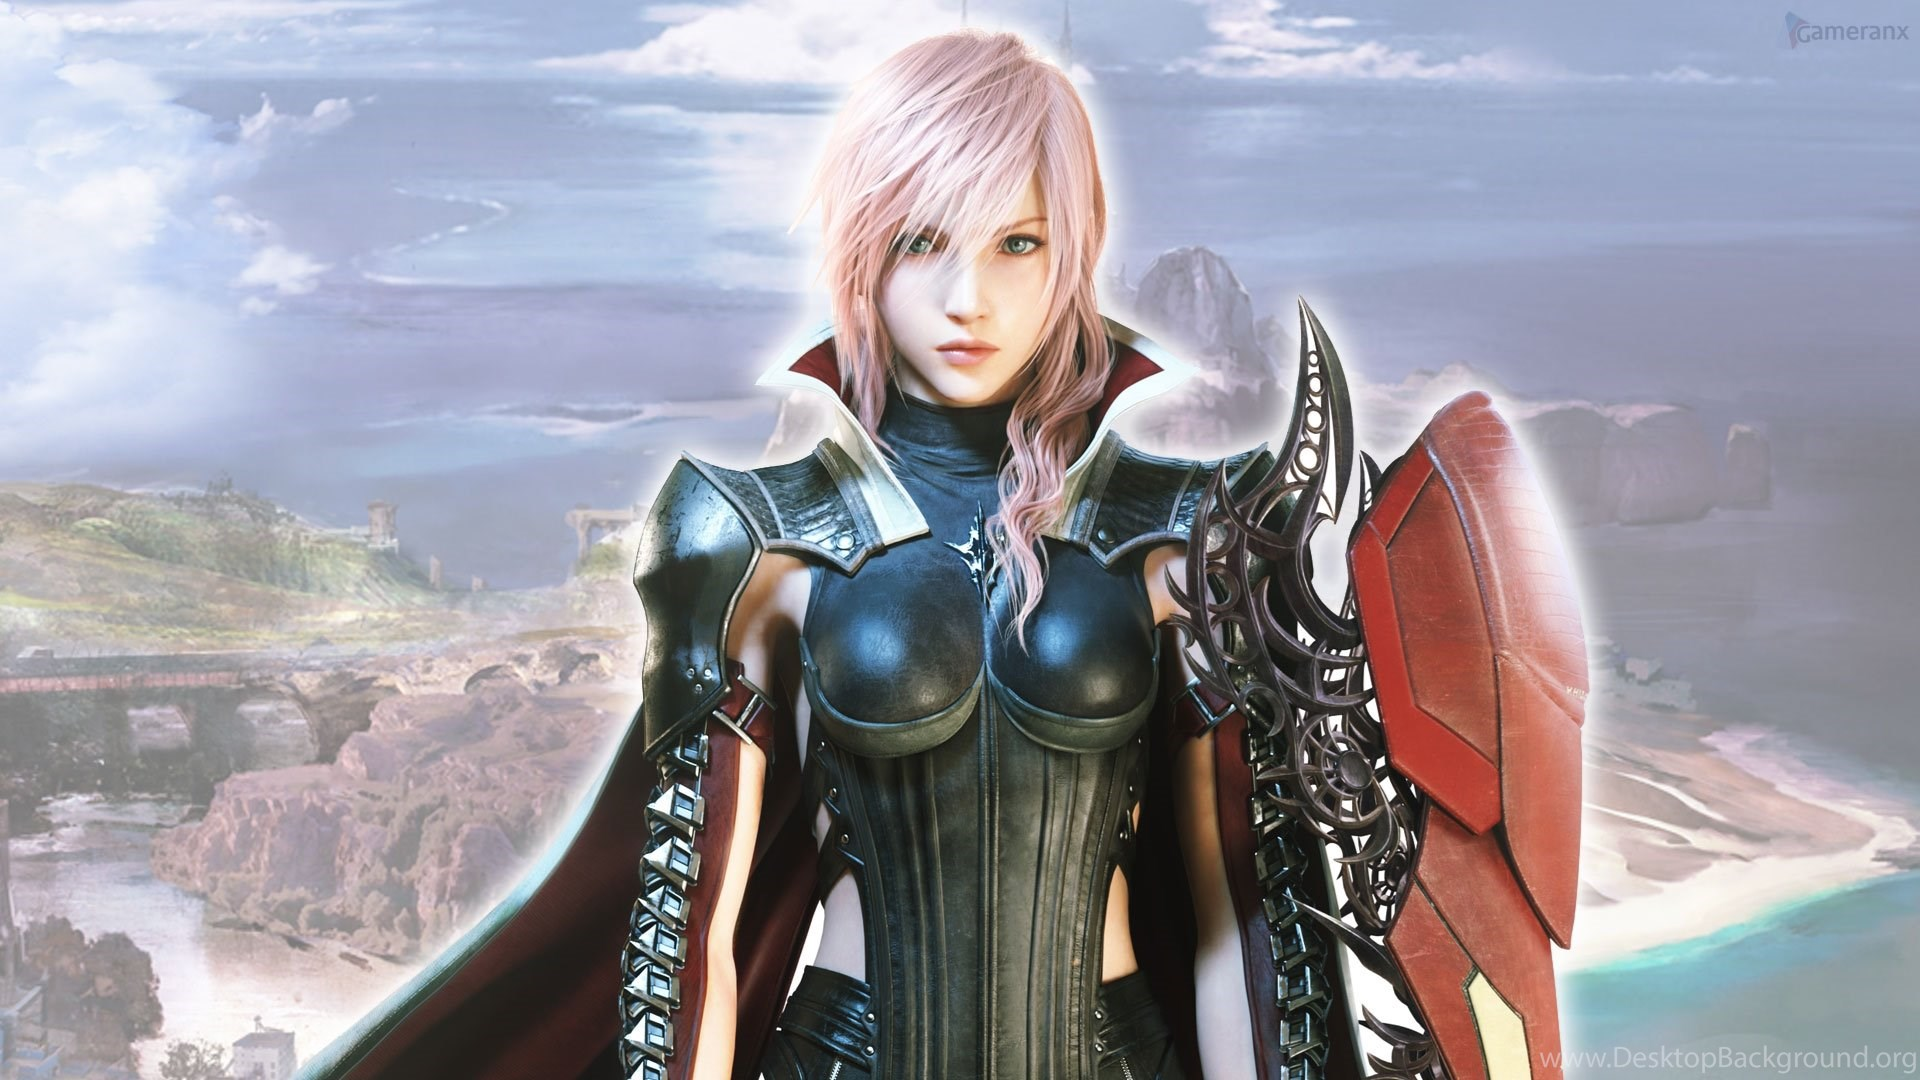 Lightning Returns Final Fantasy Xiii Wallpapers Desktop Background